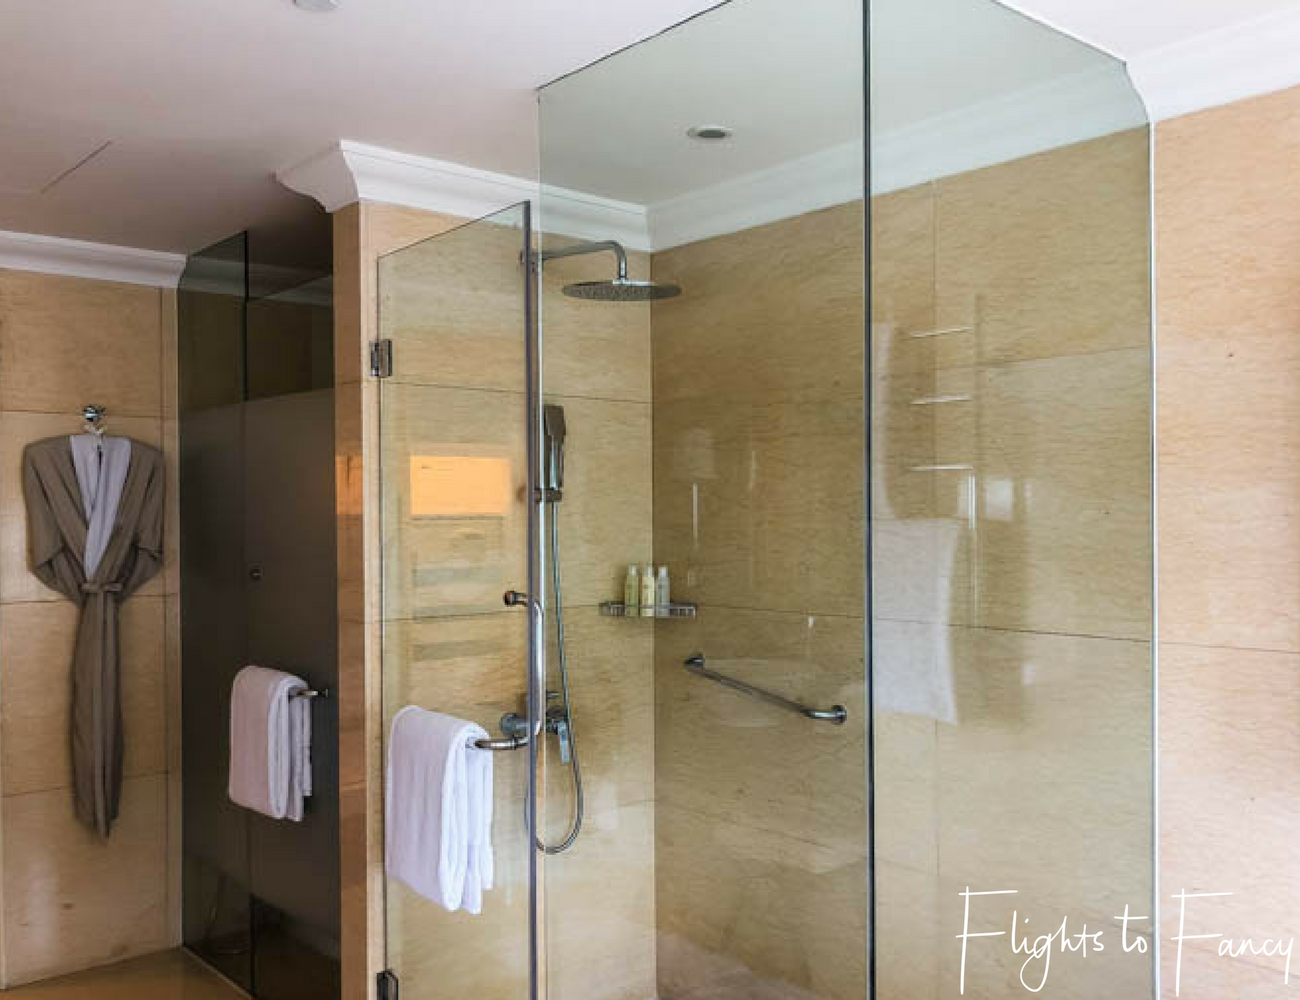 Flights To Fancy at Raffles Manila - The bathrooms are the best in five star hotels in Makati